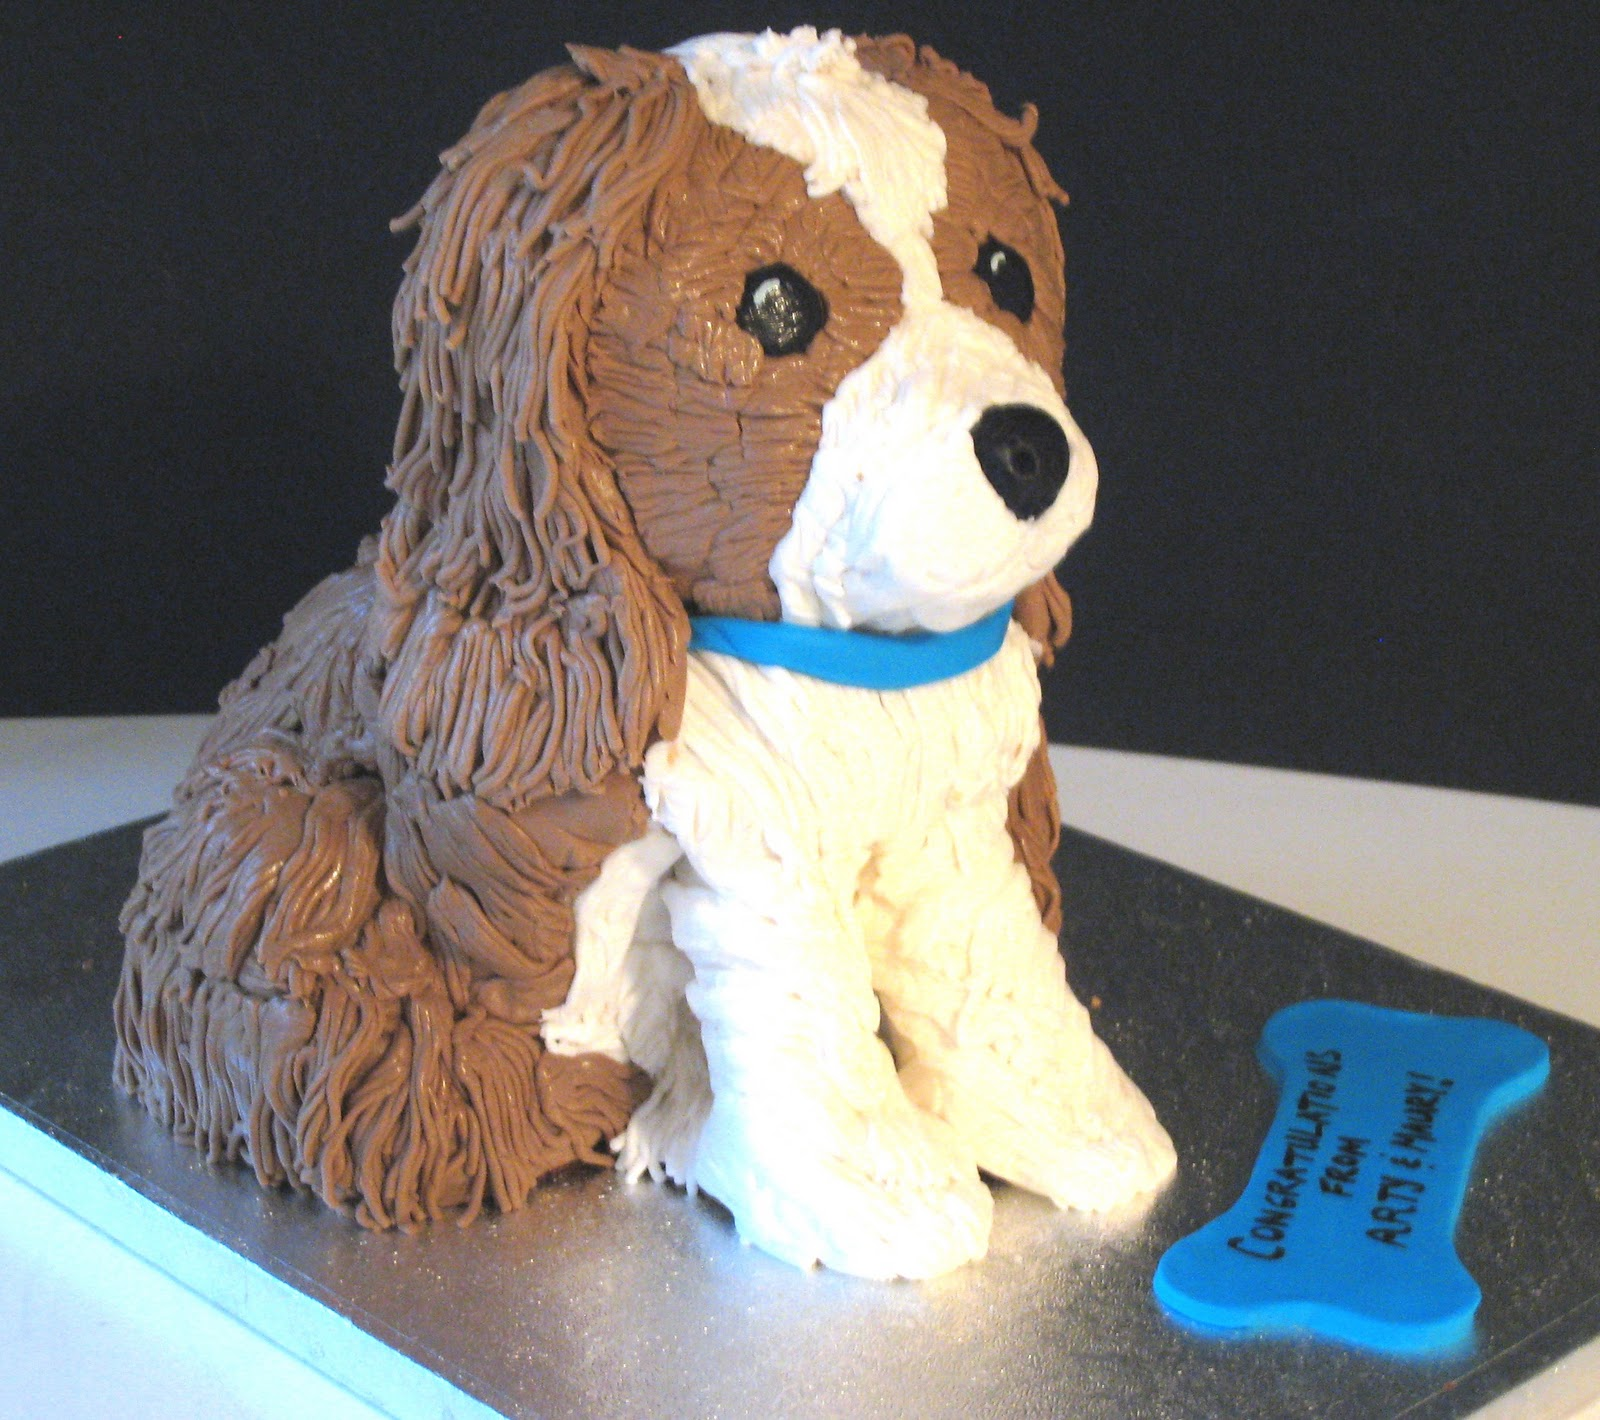 Pictures of Dog Cakes http://heavenlybitescakes.blogspot.com/2010/11/ruff-ruff.html